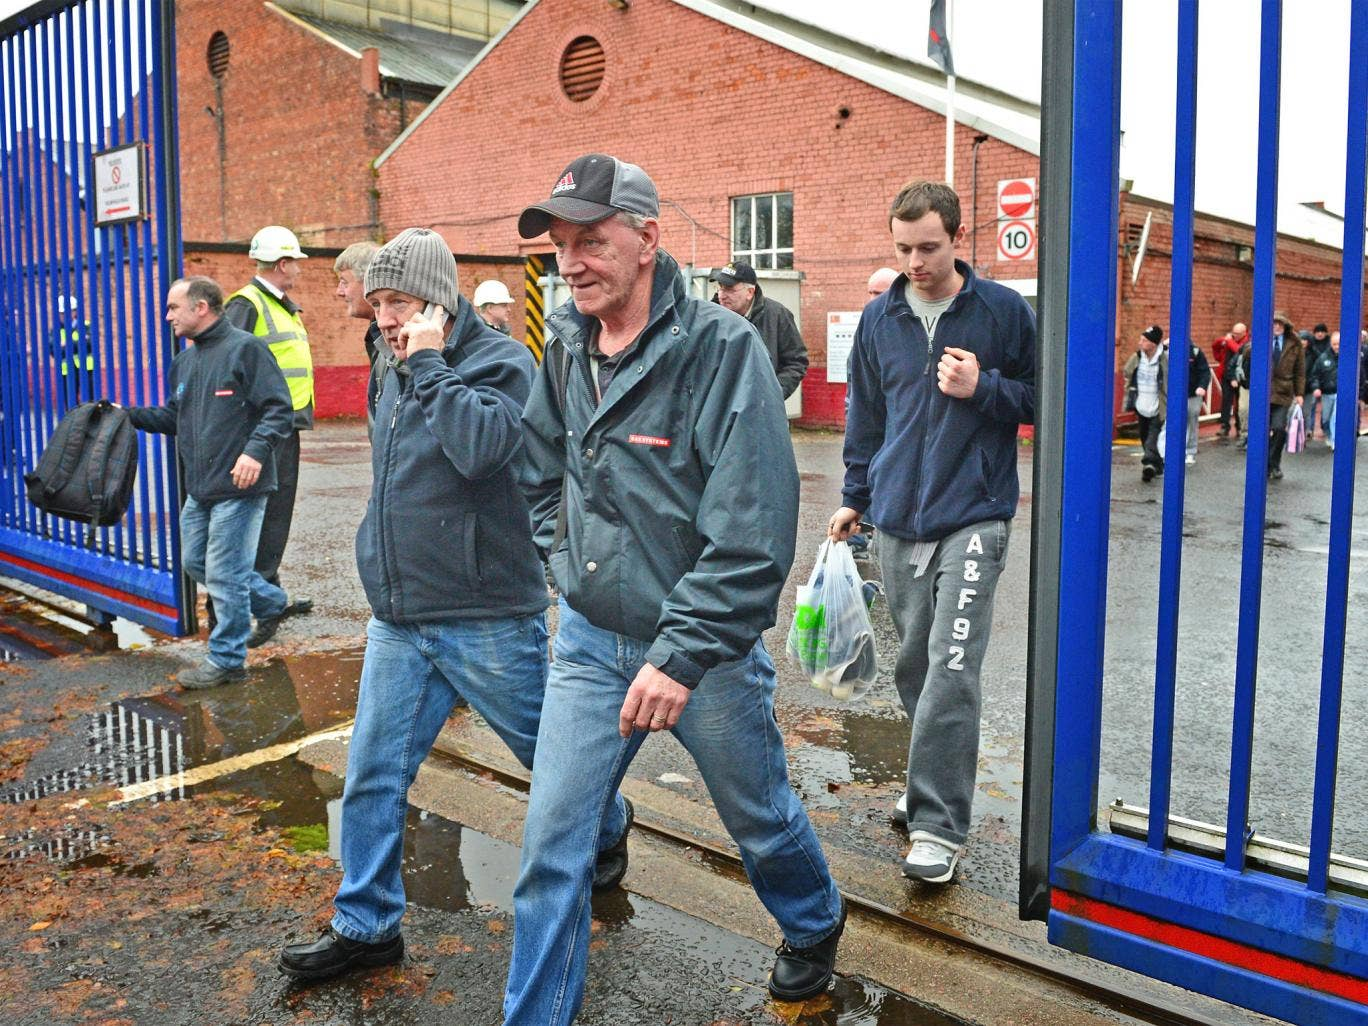 Shipyard workers leave the BAE systems yard in Govan following the announcement that the company will be cutting jobs